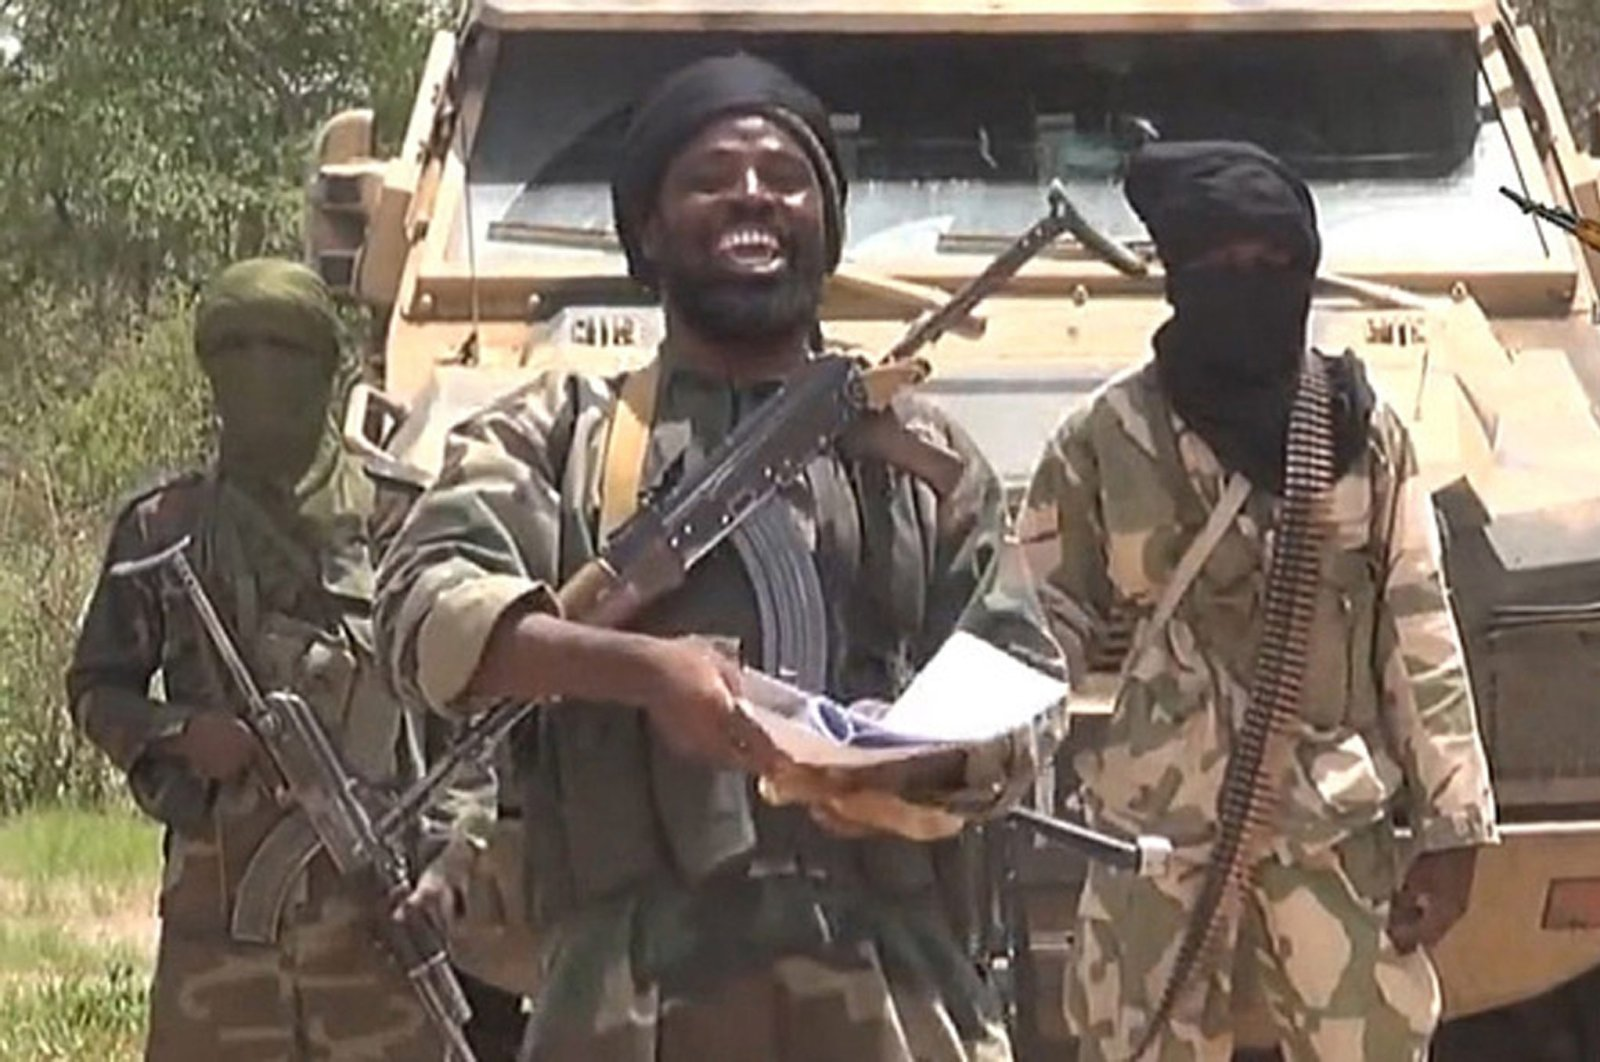 Boko Haram leader Abubakar Shekau (C) smiles in a video made and released by the terrorist group at an undisclosed location and date, in this screengrab taken on July 13, 2014. (AFP/Boko Haram/Getty Images)